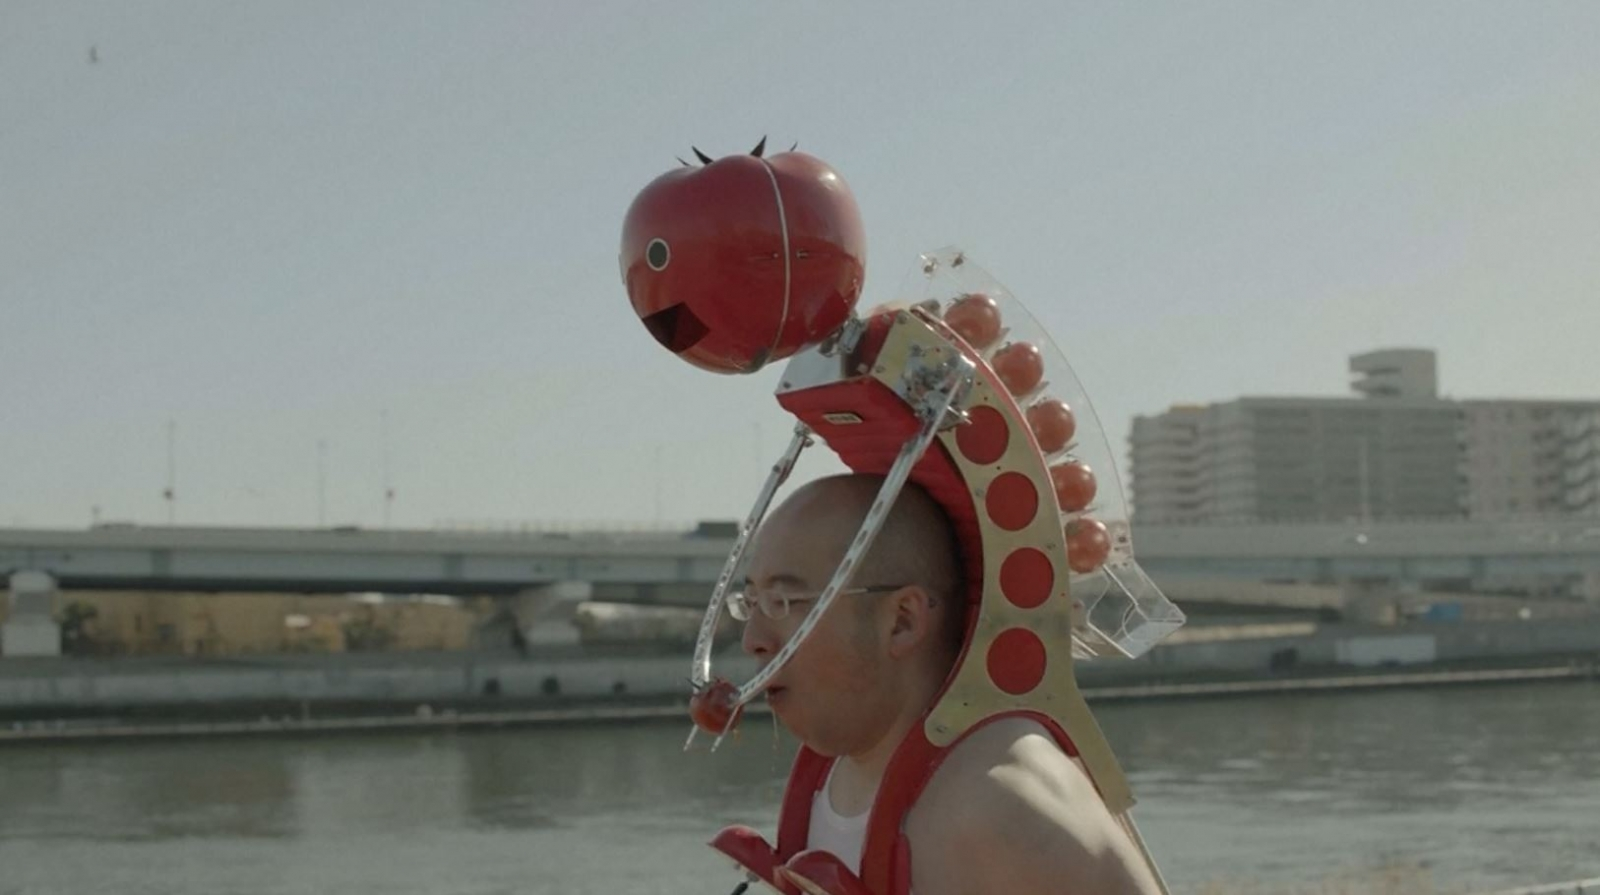 Meet Tomatan, a wearable robot that feeds you tomatoes as you run